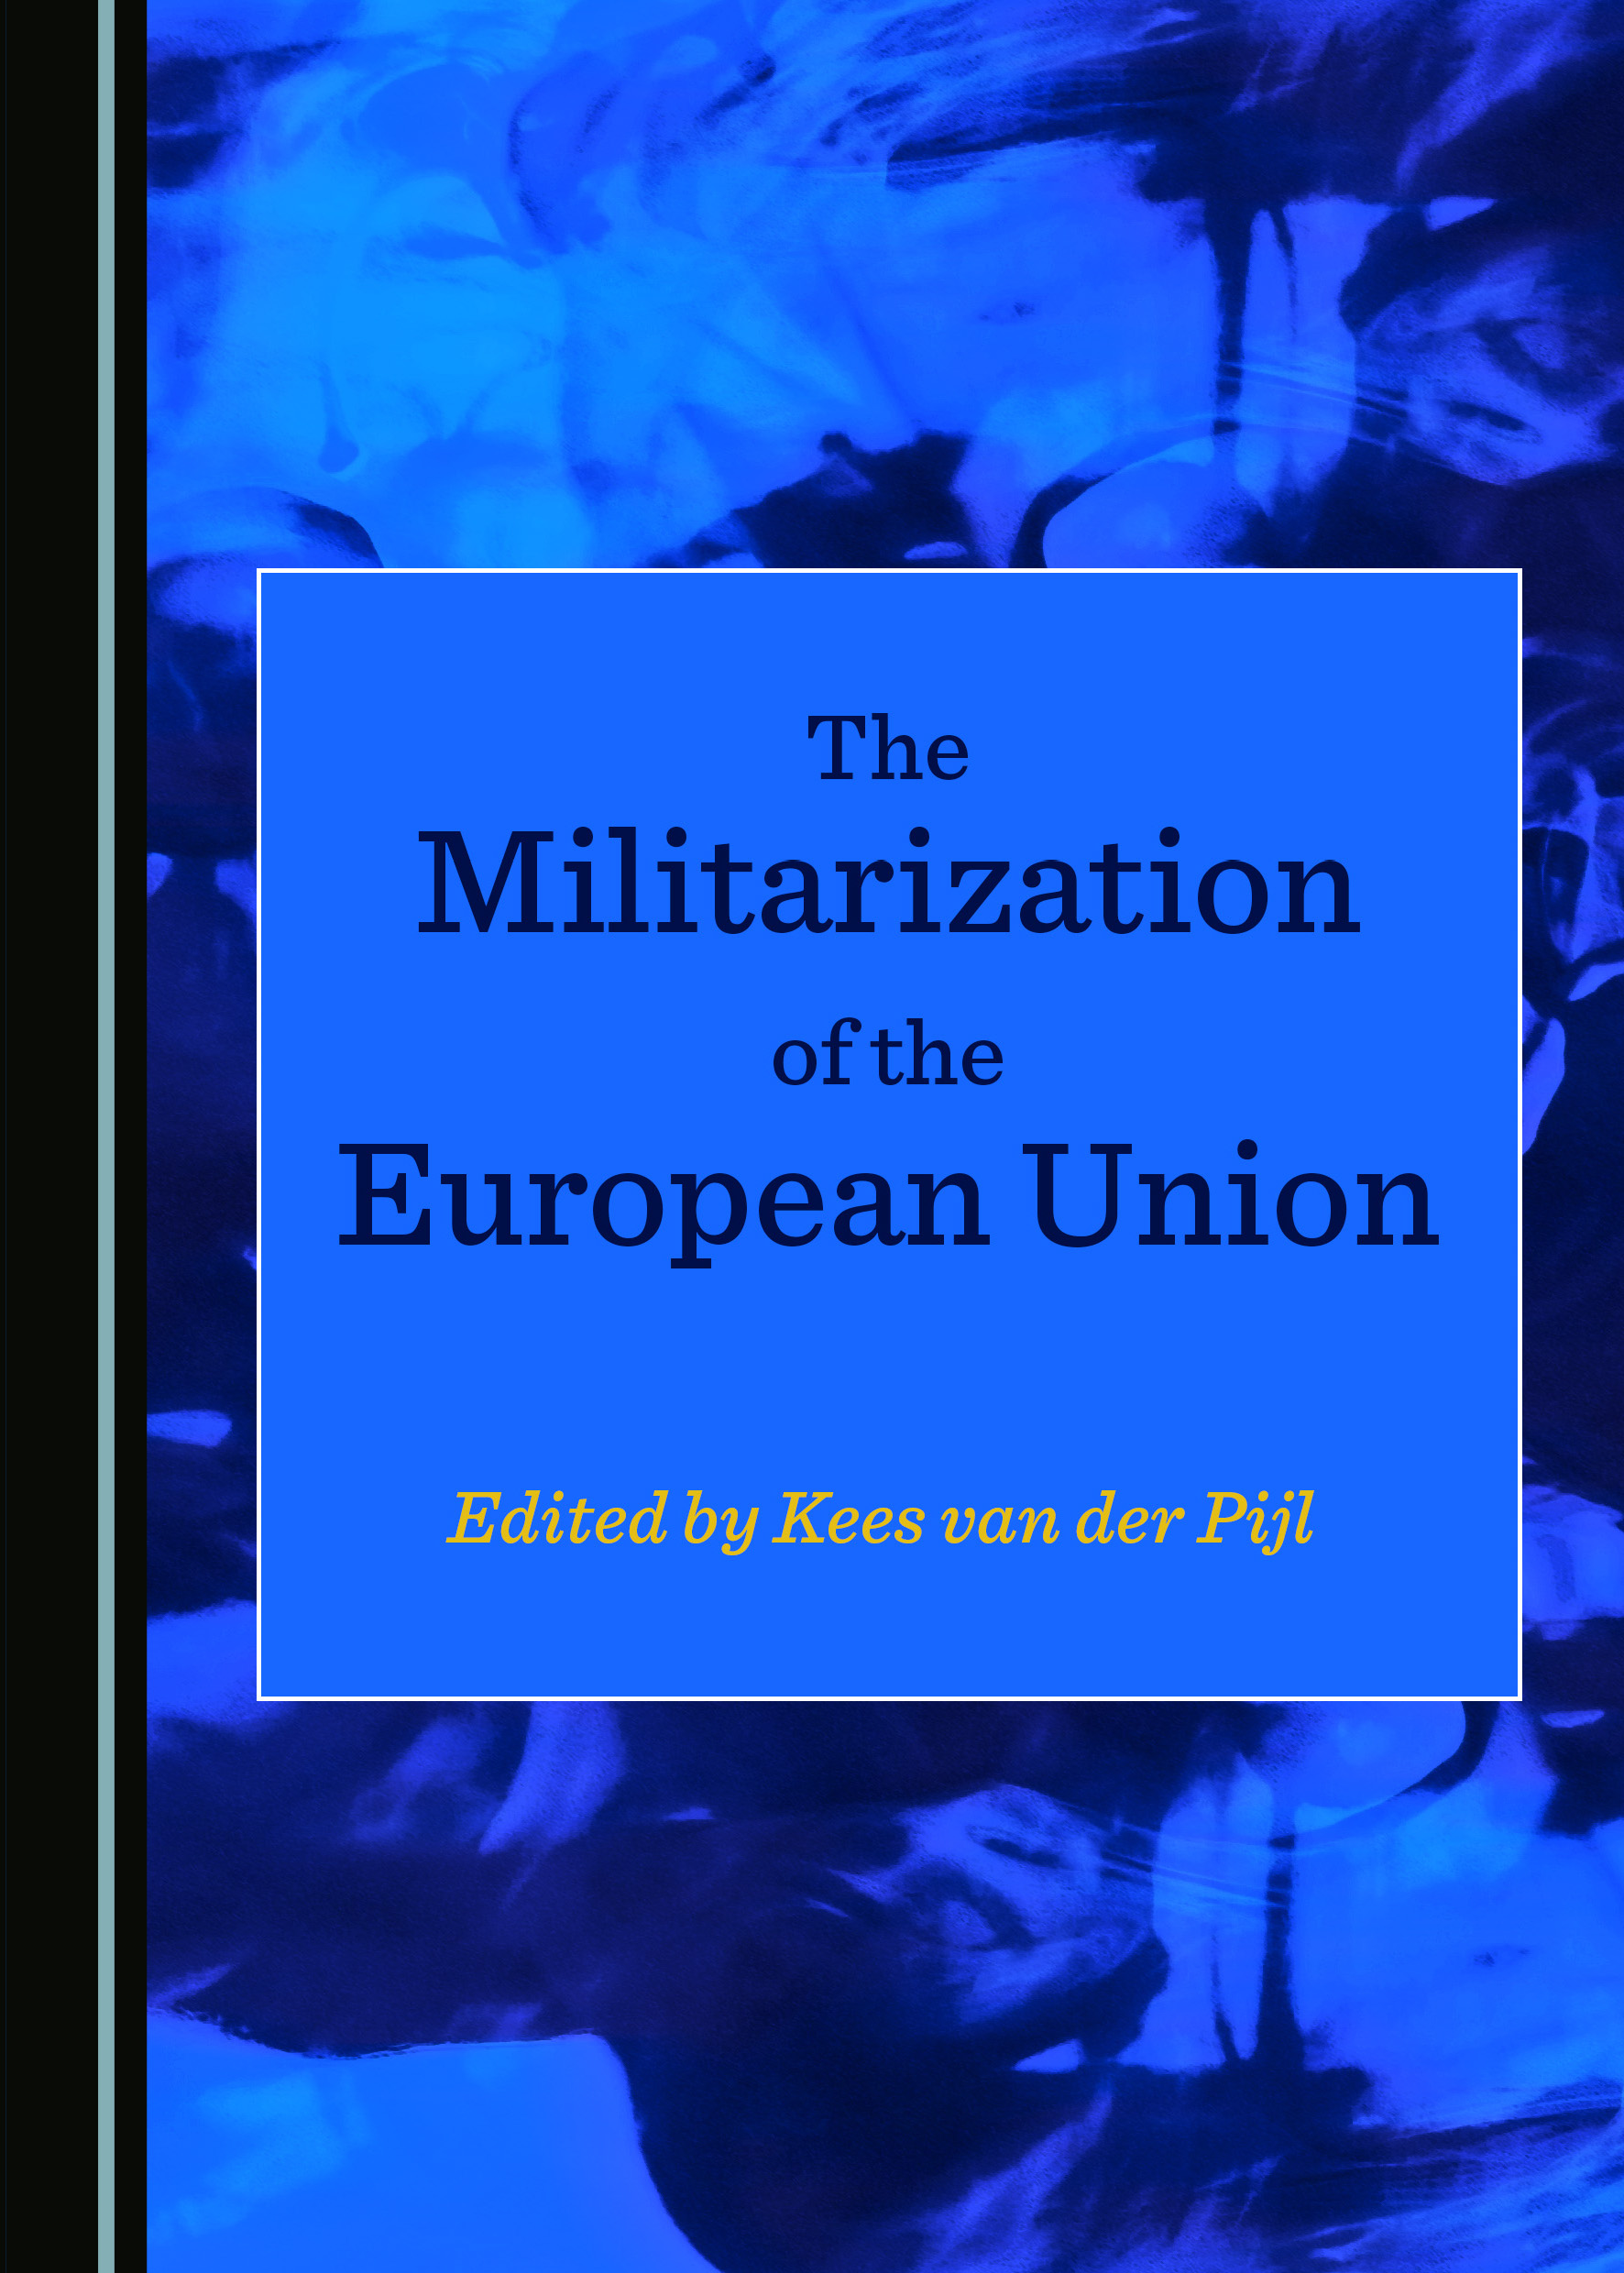 The Militarization of the European Union